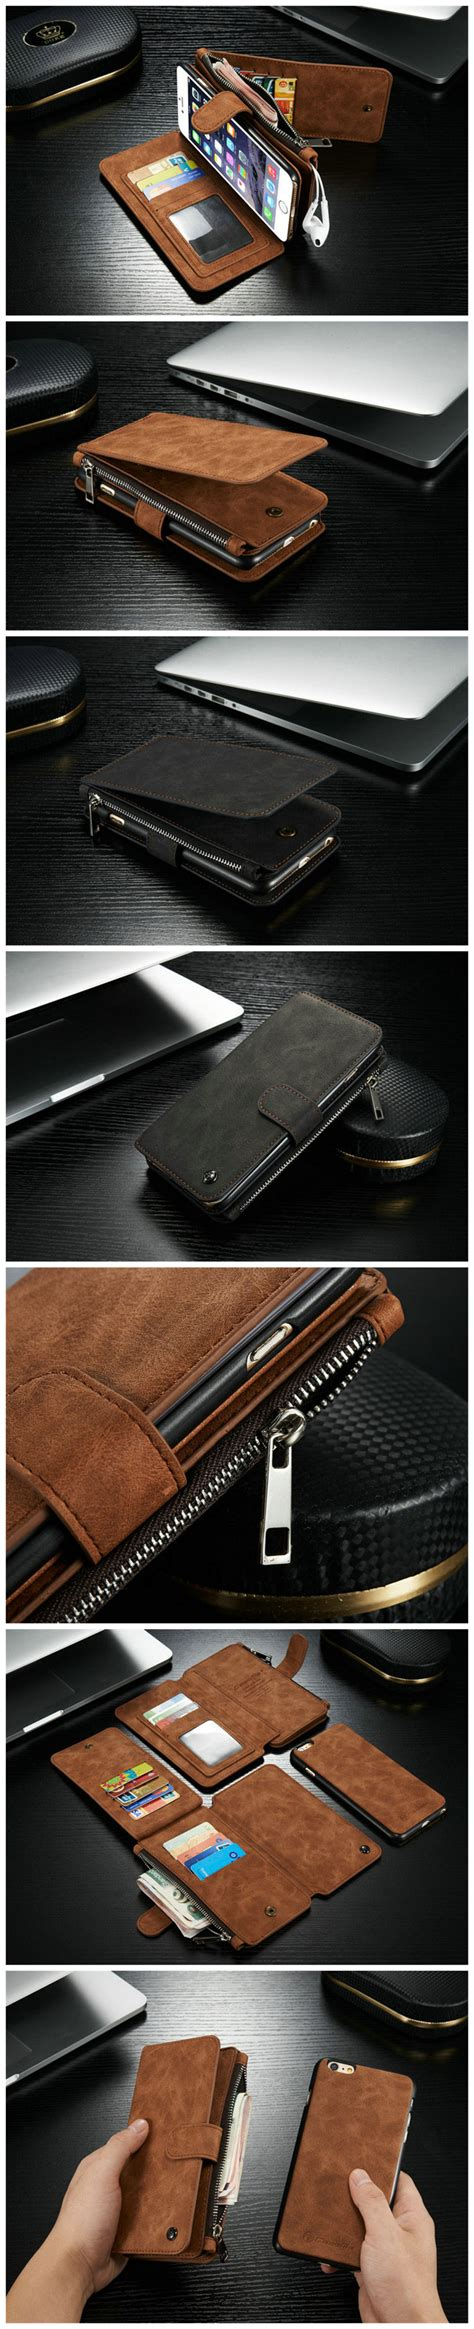 Remax Beast Series Flip Cover For Iphone 6s 6s Plus 3 vintage leather multi function wallet card pocket zipper flip cover for apple iphone 6 plus